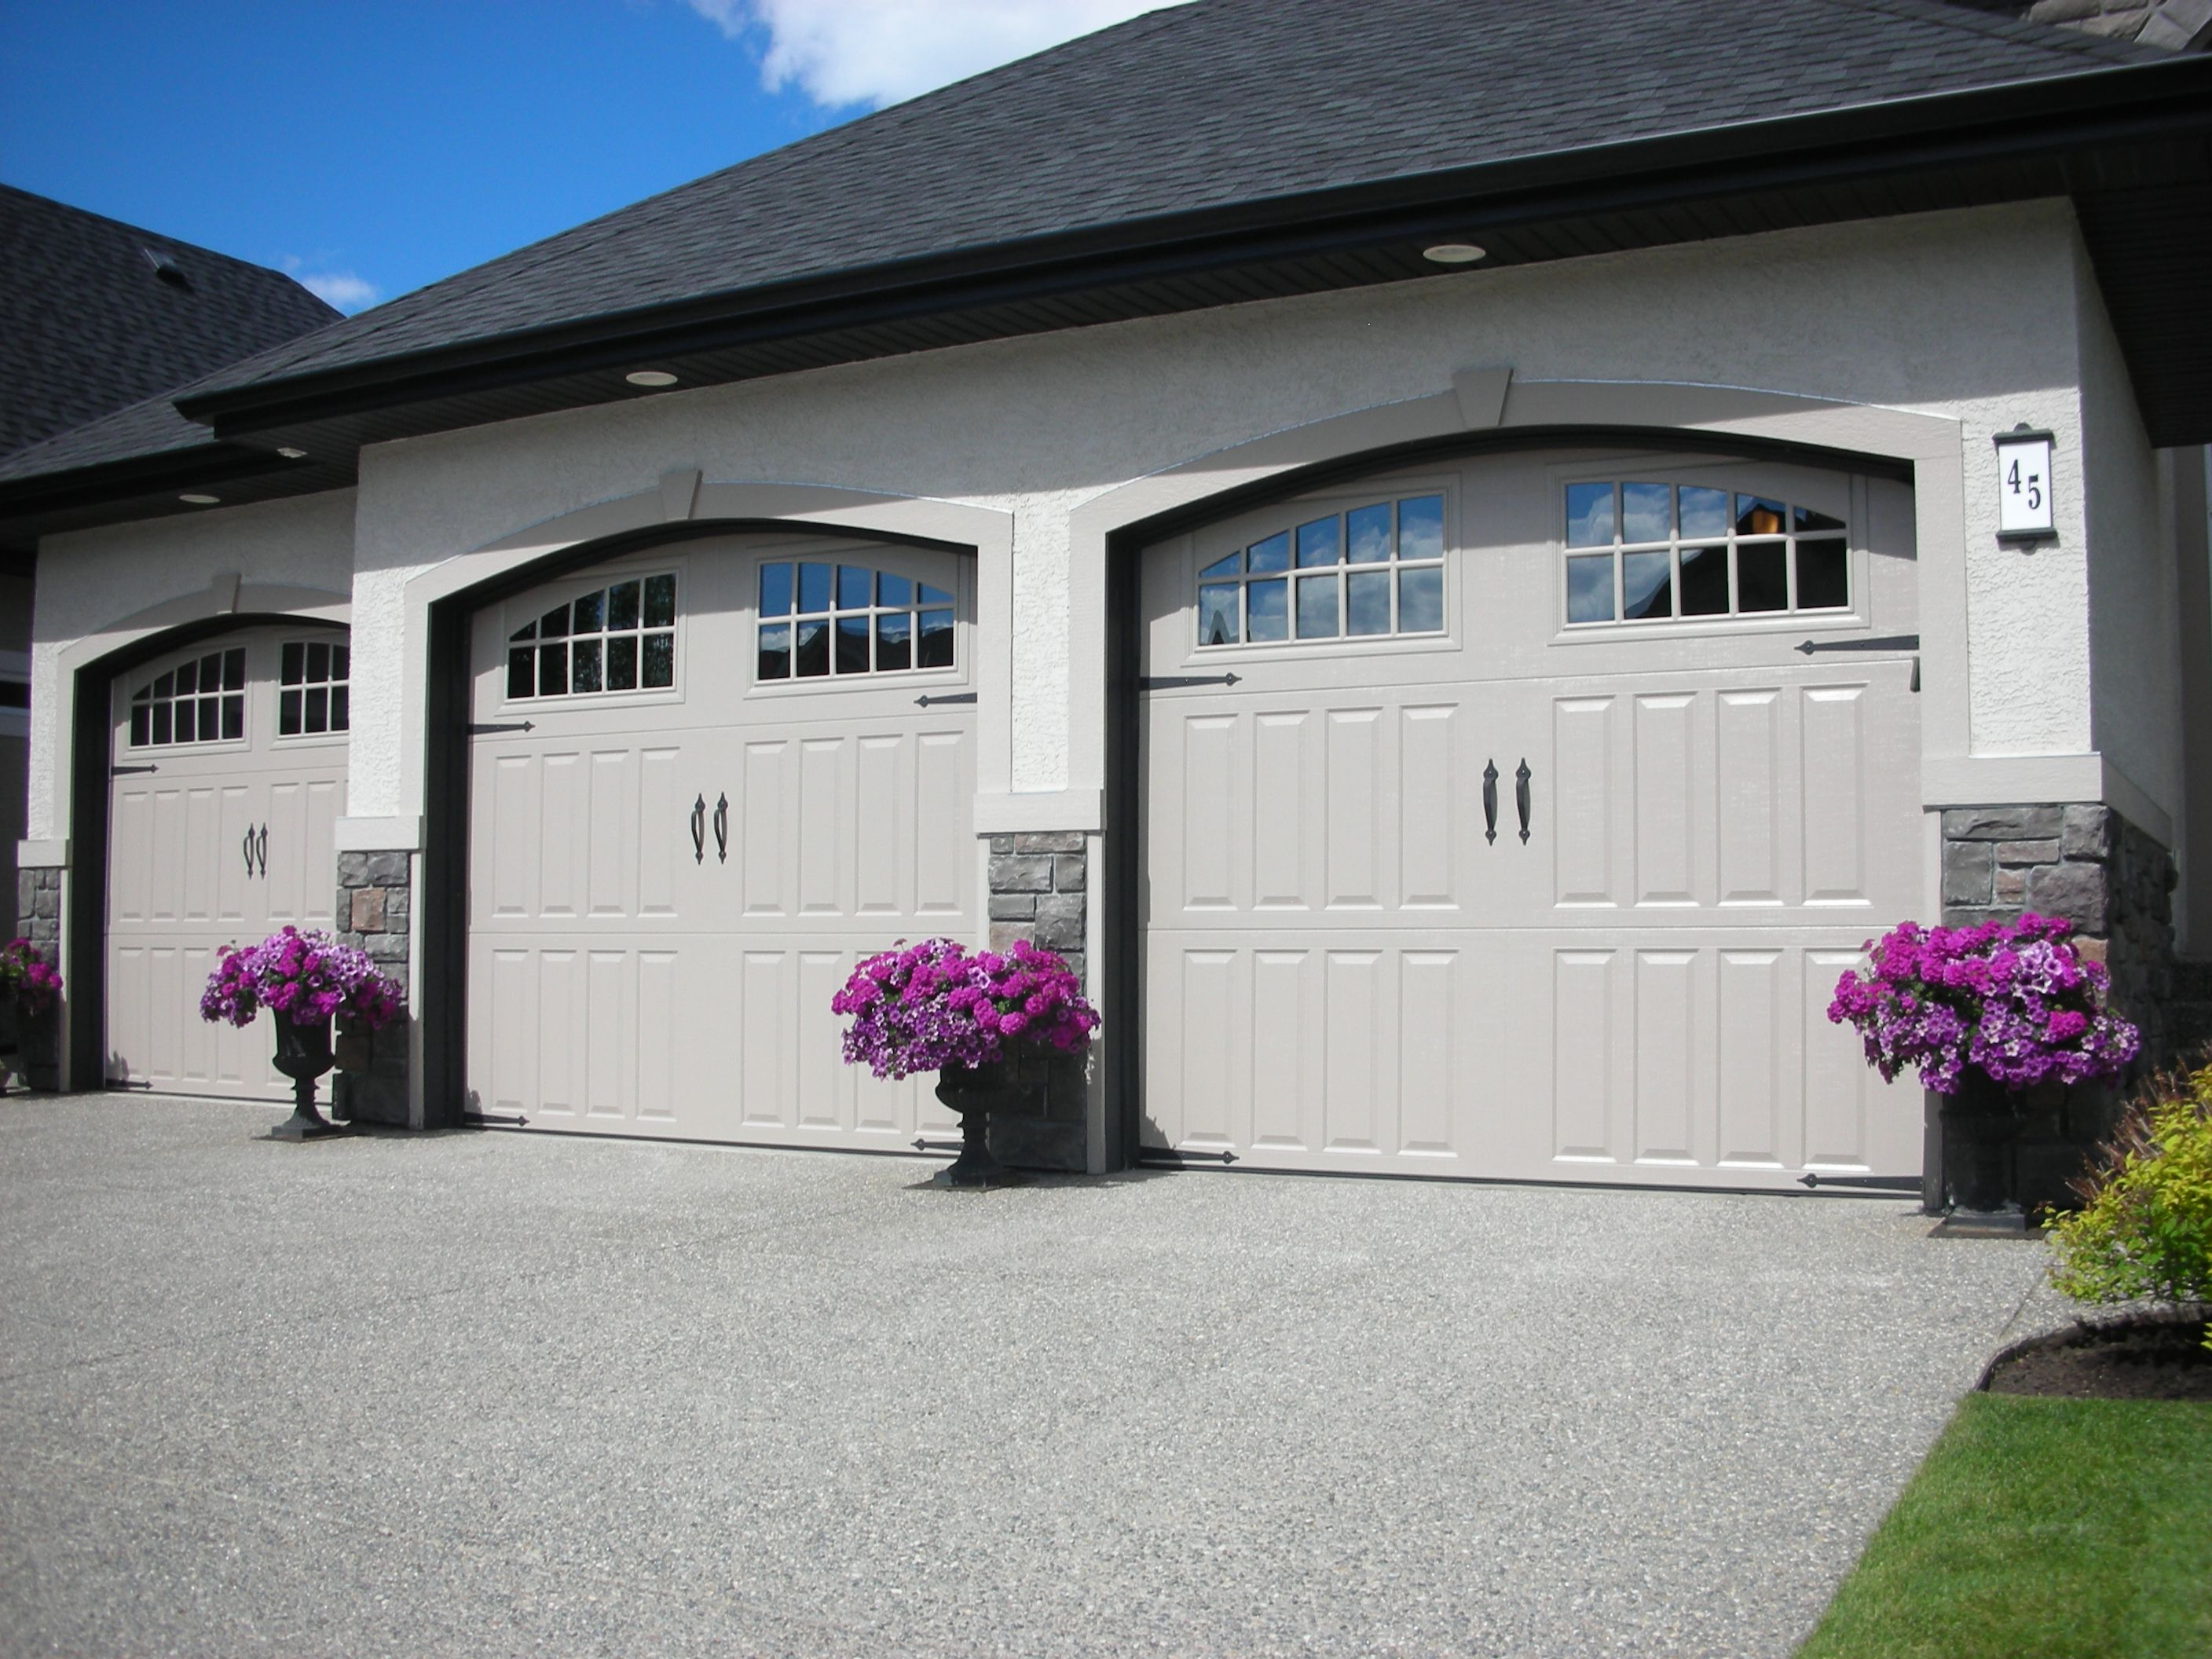 Amarr classica northampton garage door in true white with thames amarr classica northampton garage door in true white with thames windows and optional blue ridge handles and straps visit amarr for more rubansaba